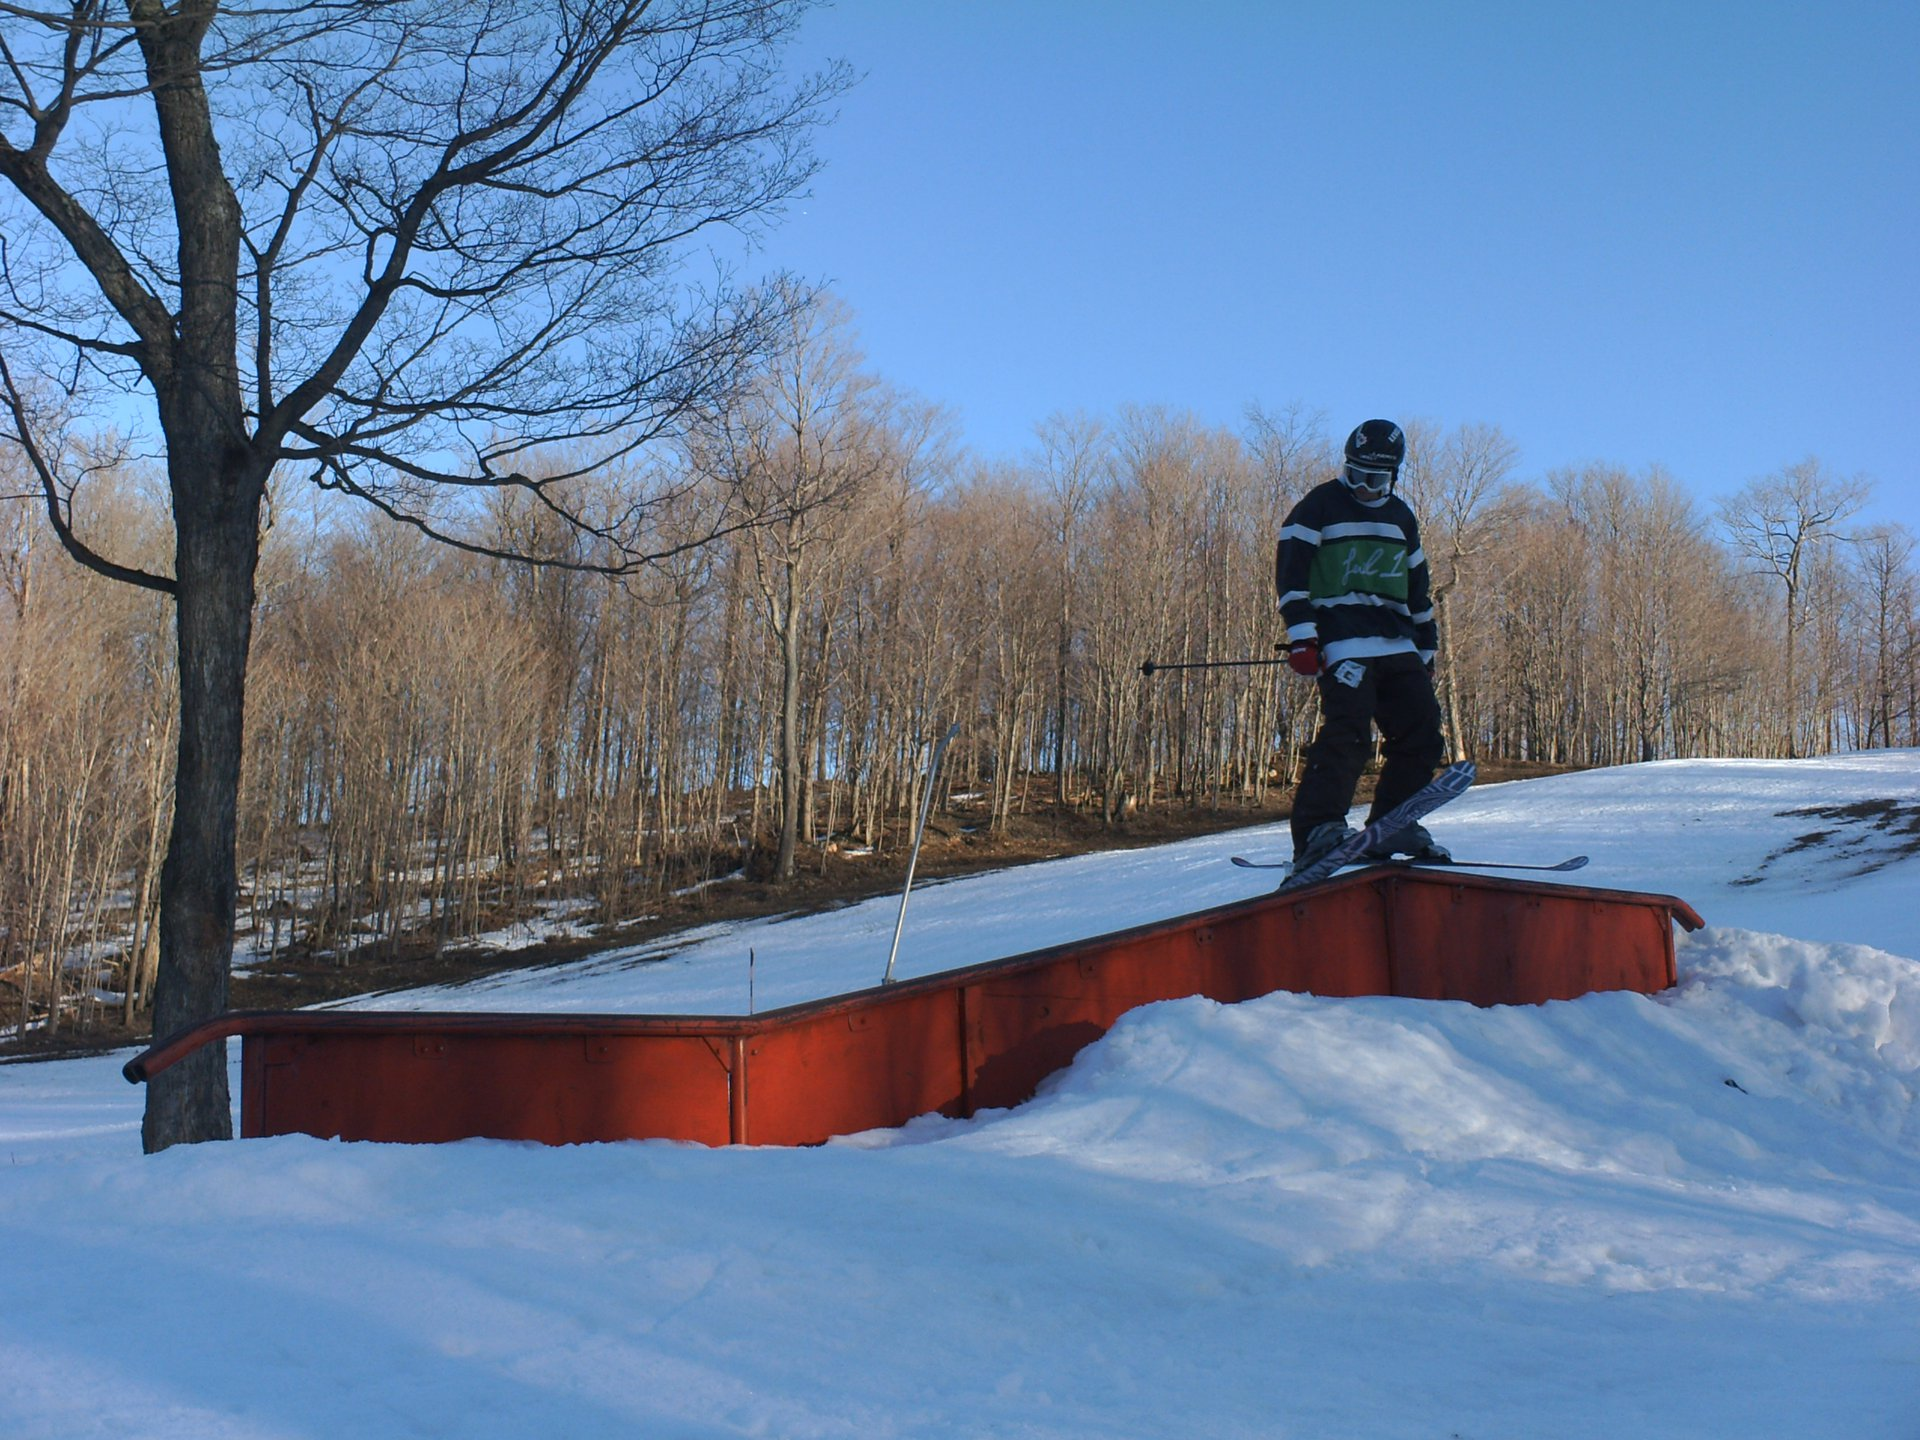 Steeze on the Doubs